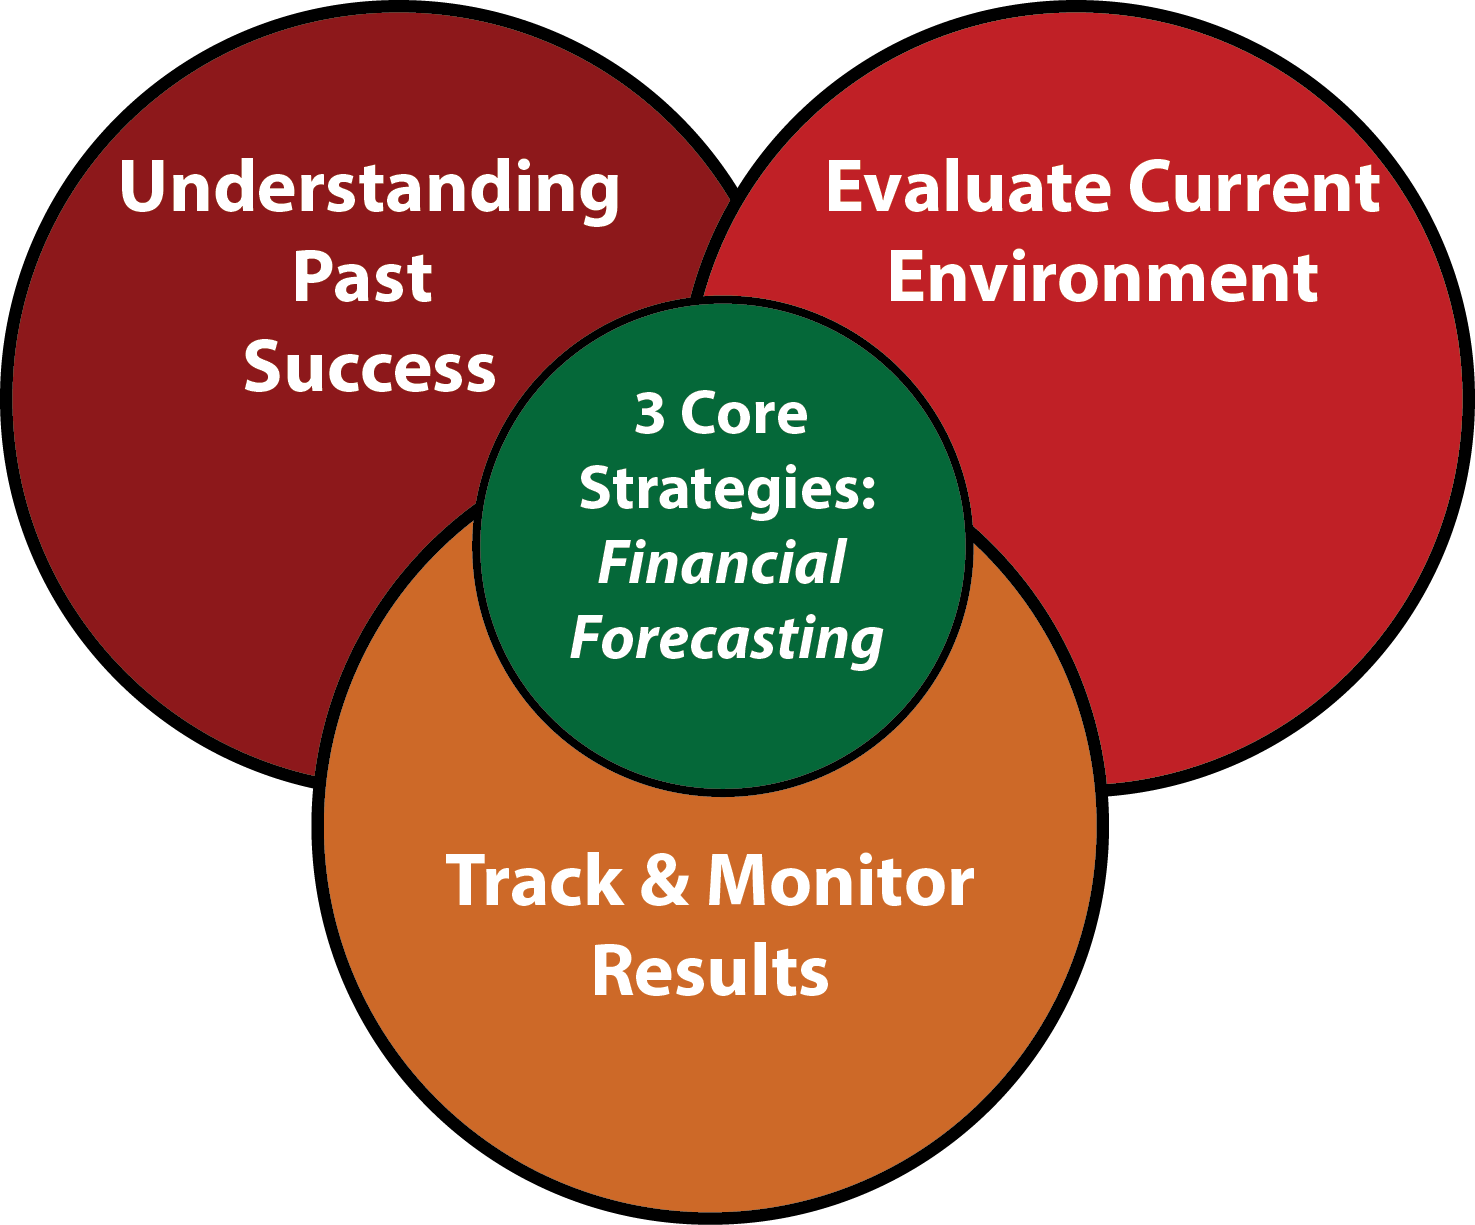 Strategies for Financial Forecasting